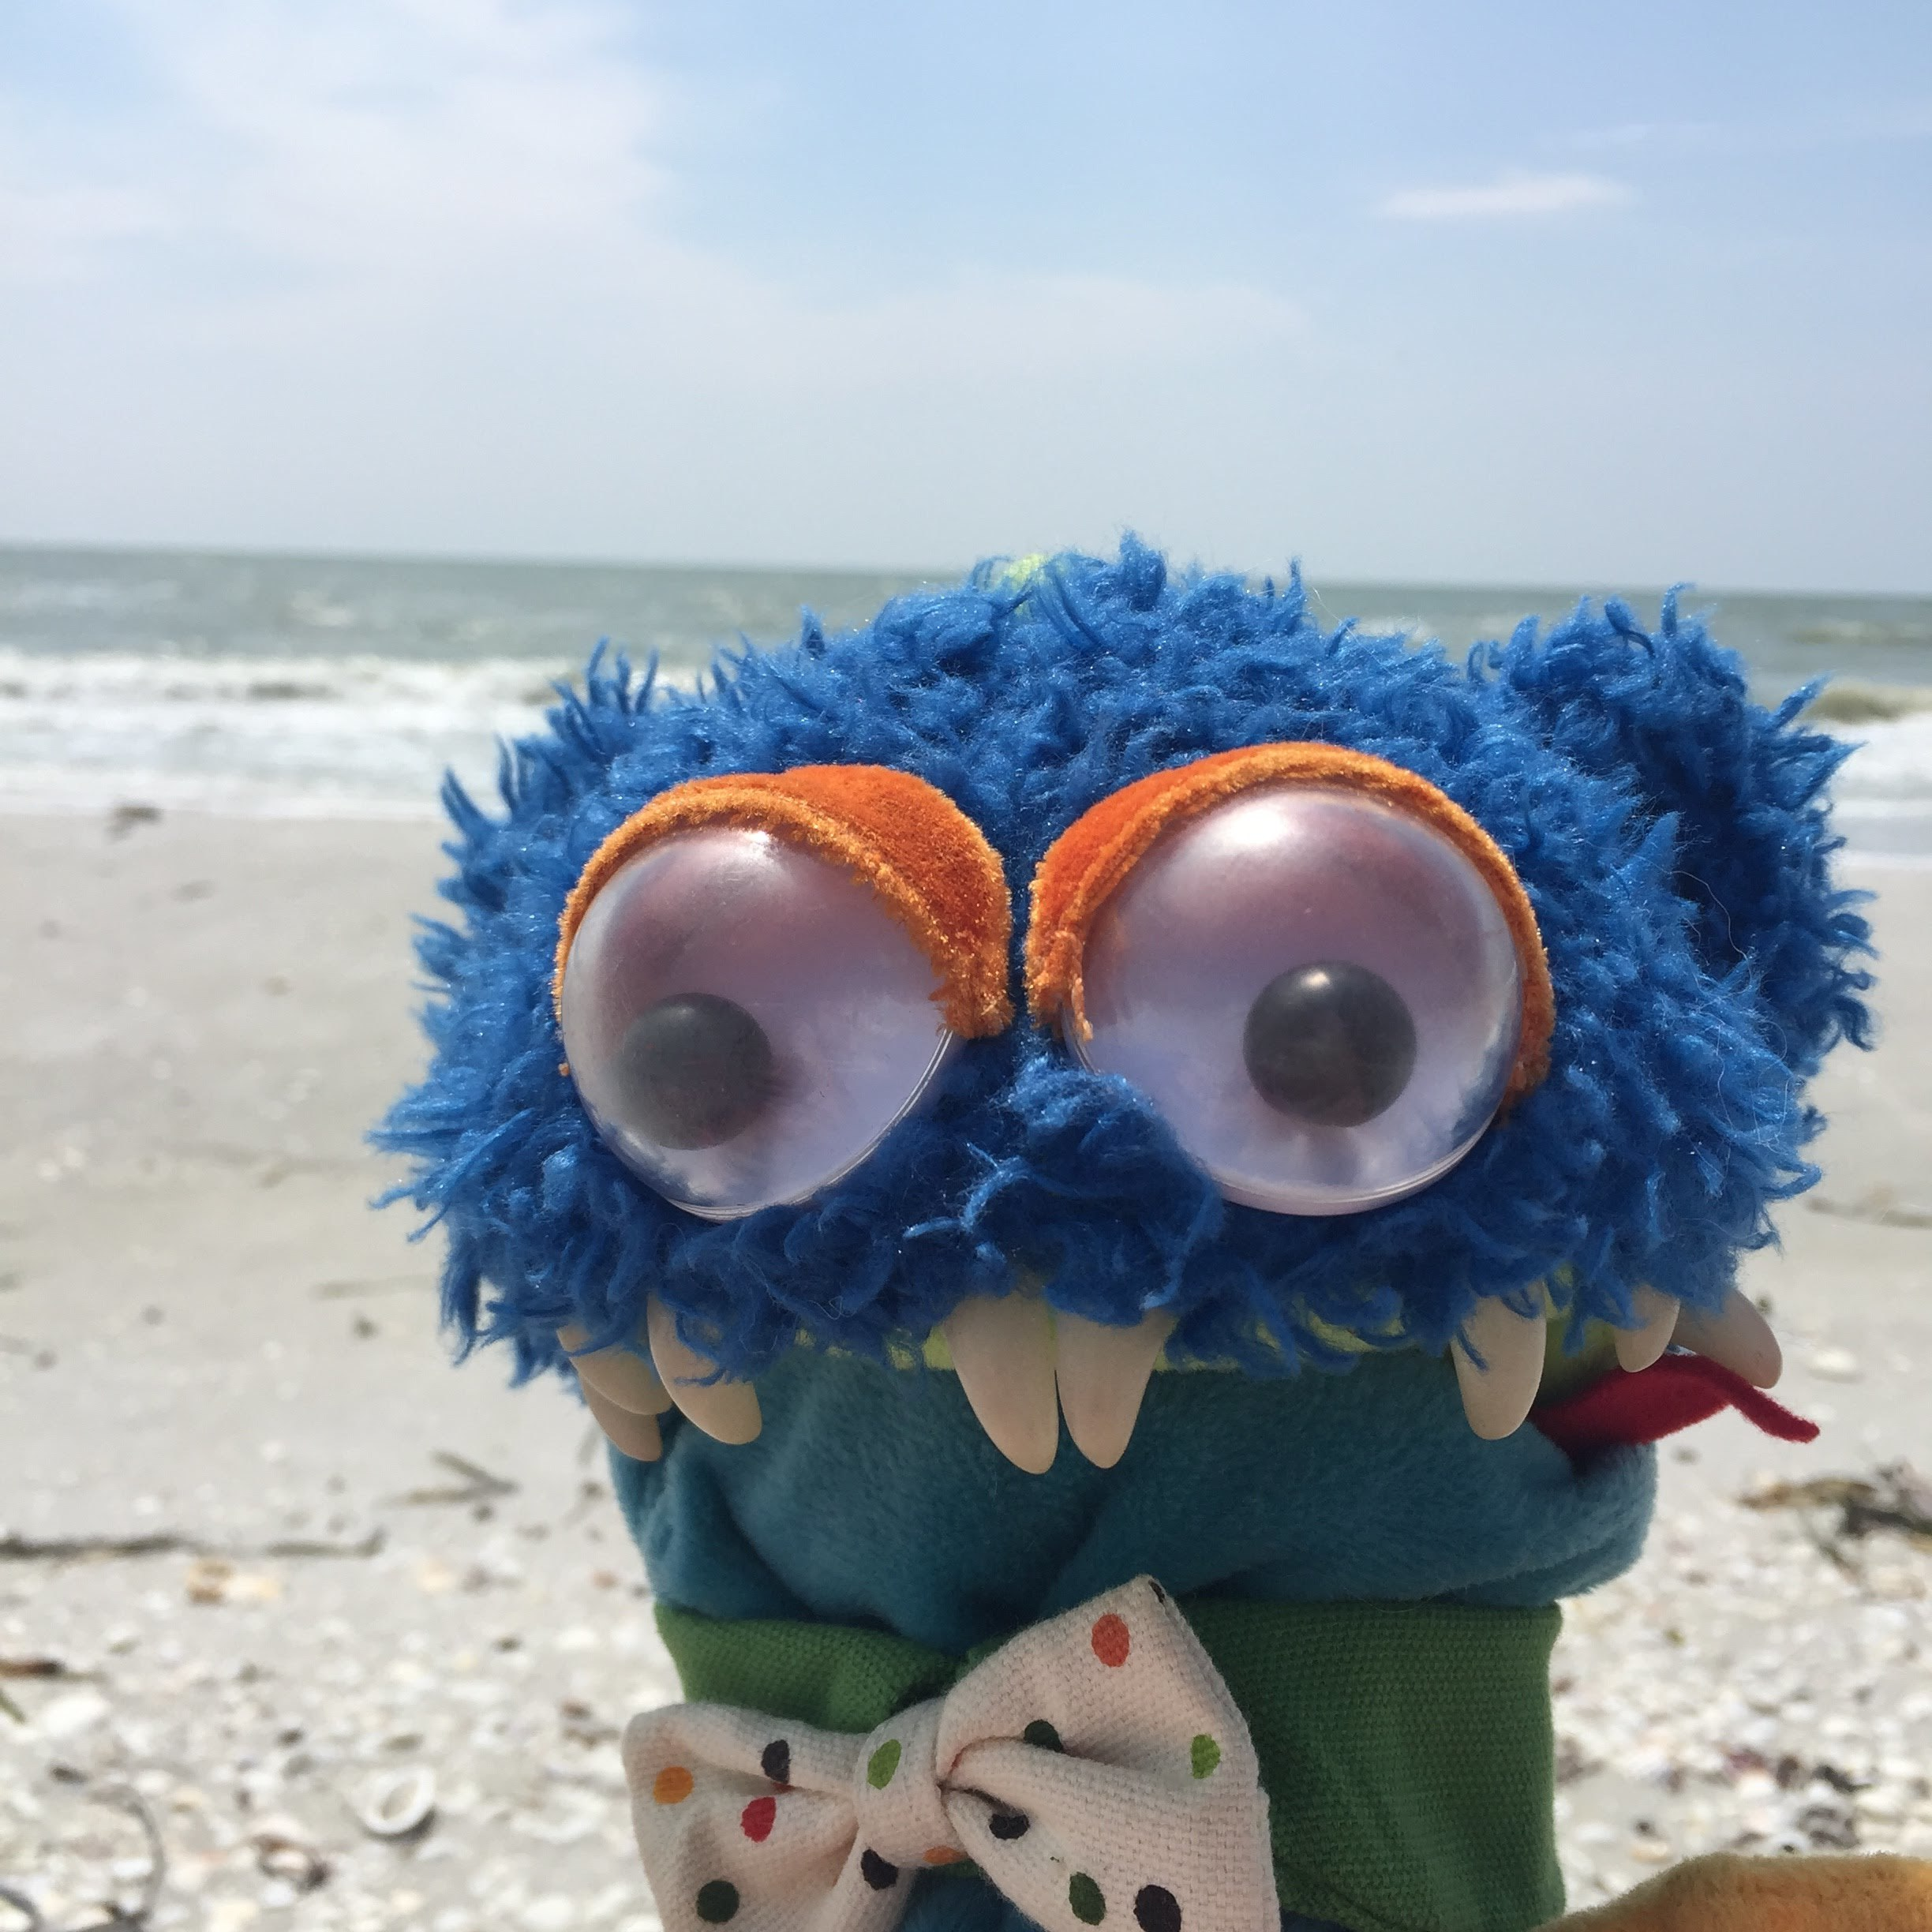 This is my puppet Humphrey GoKart. He is from the Manhattan Toy Company. He has been on numerous vacations with us. This is him being all fancy on Sanibel Island with us!